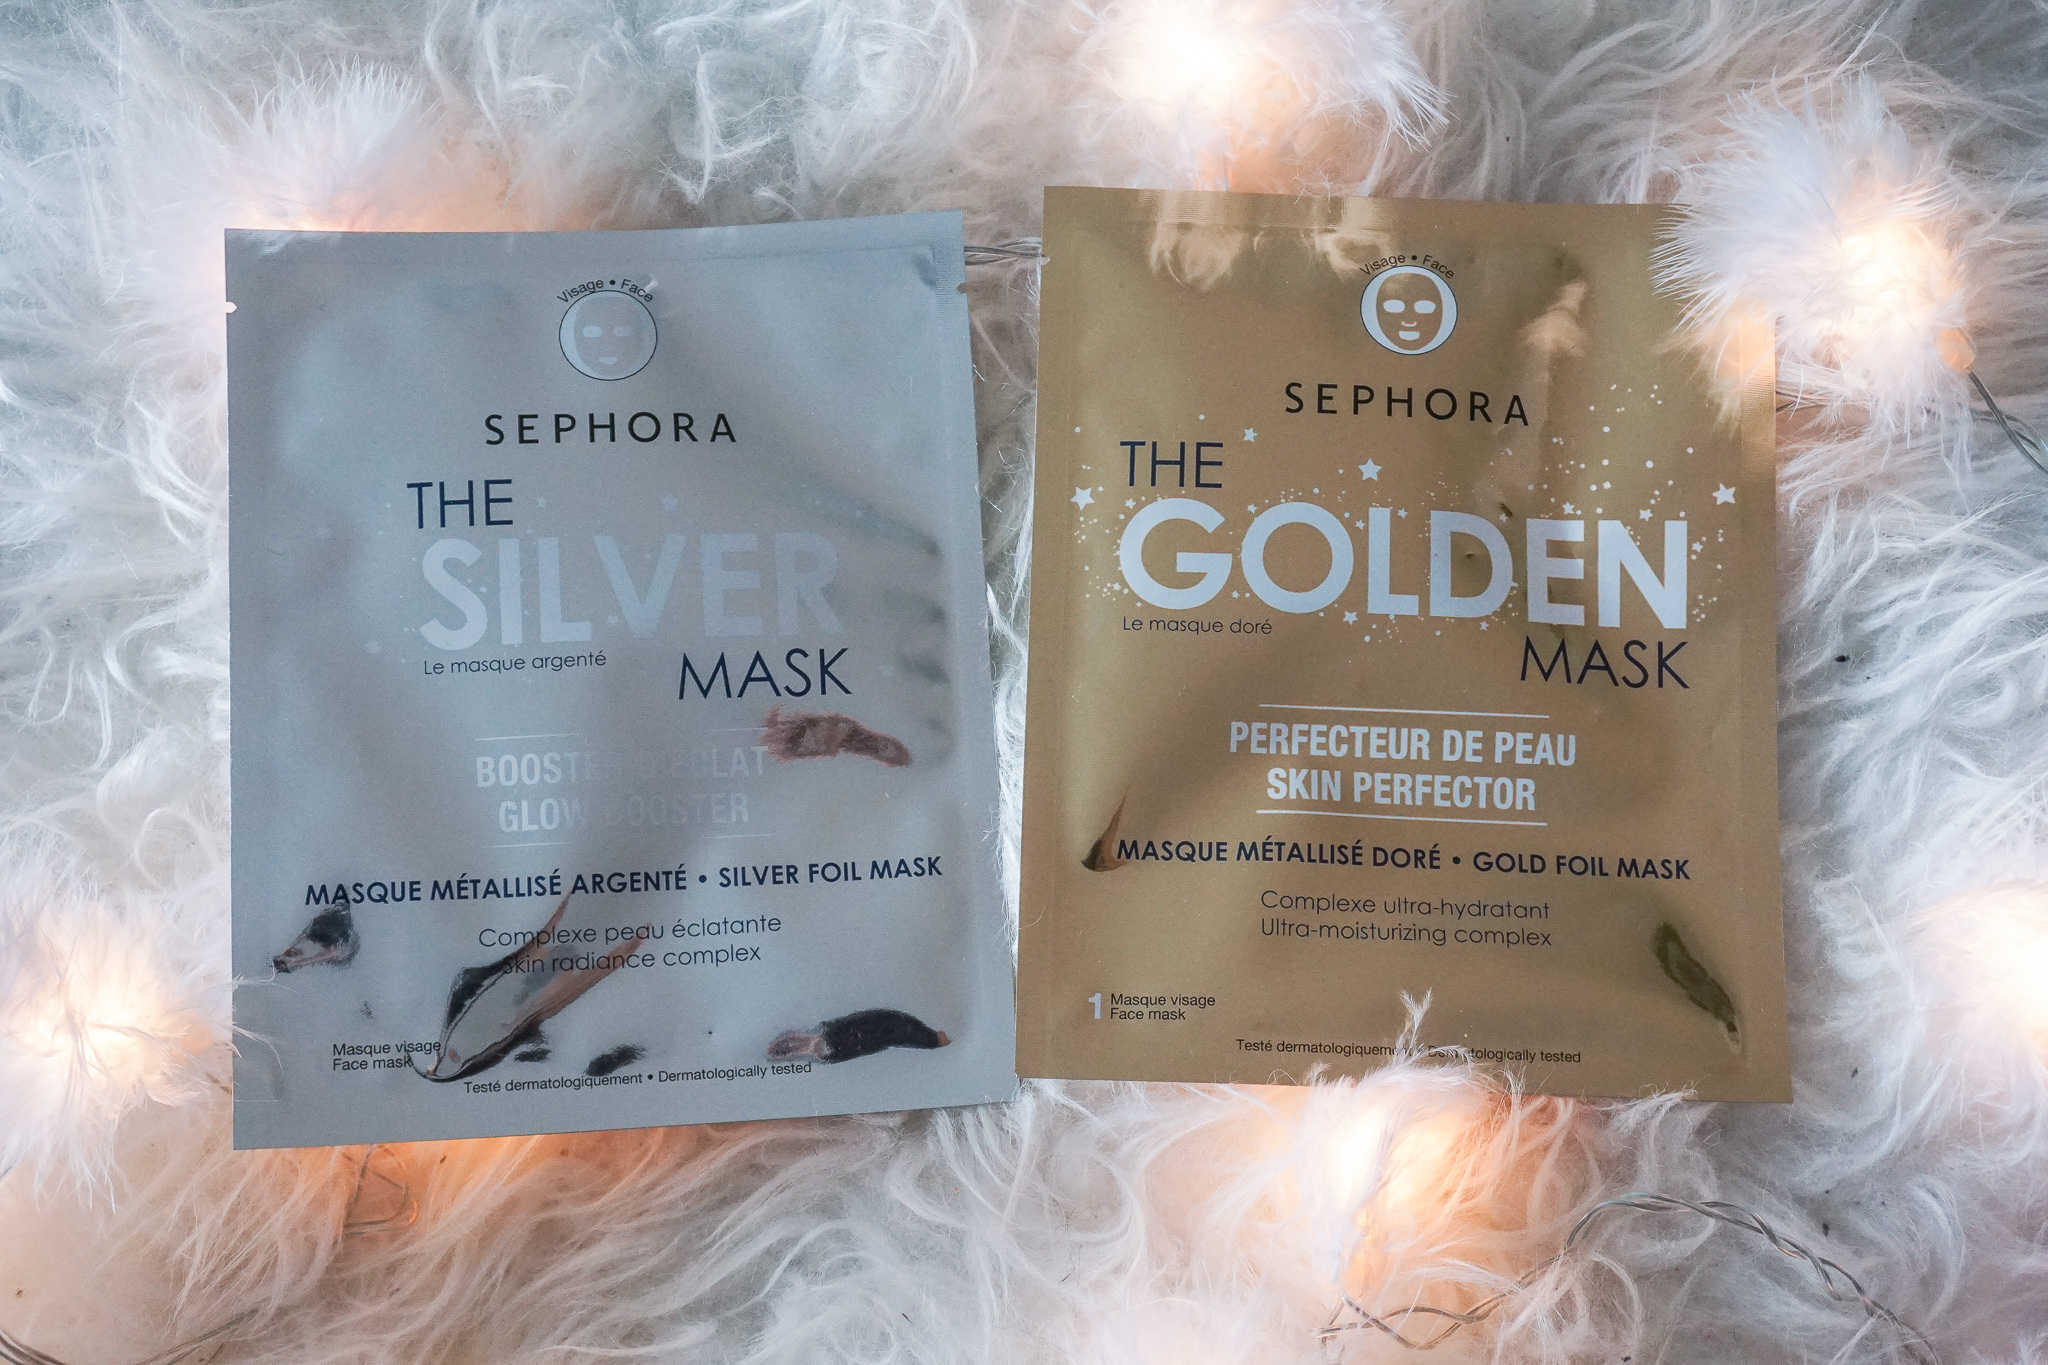 Golden Silver Mask Sephora